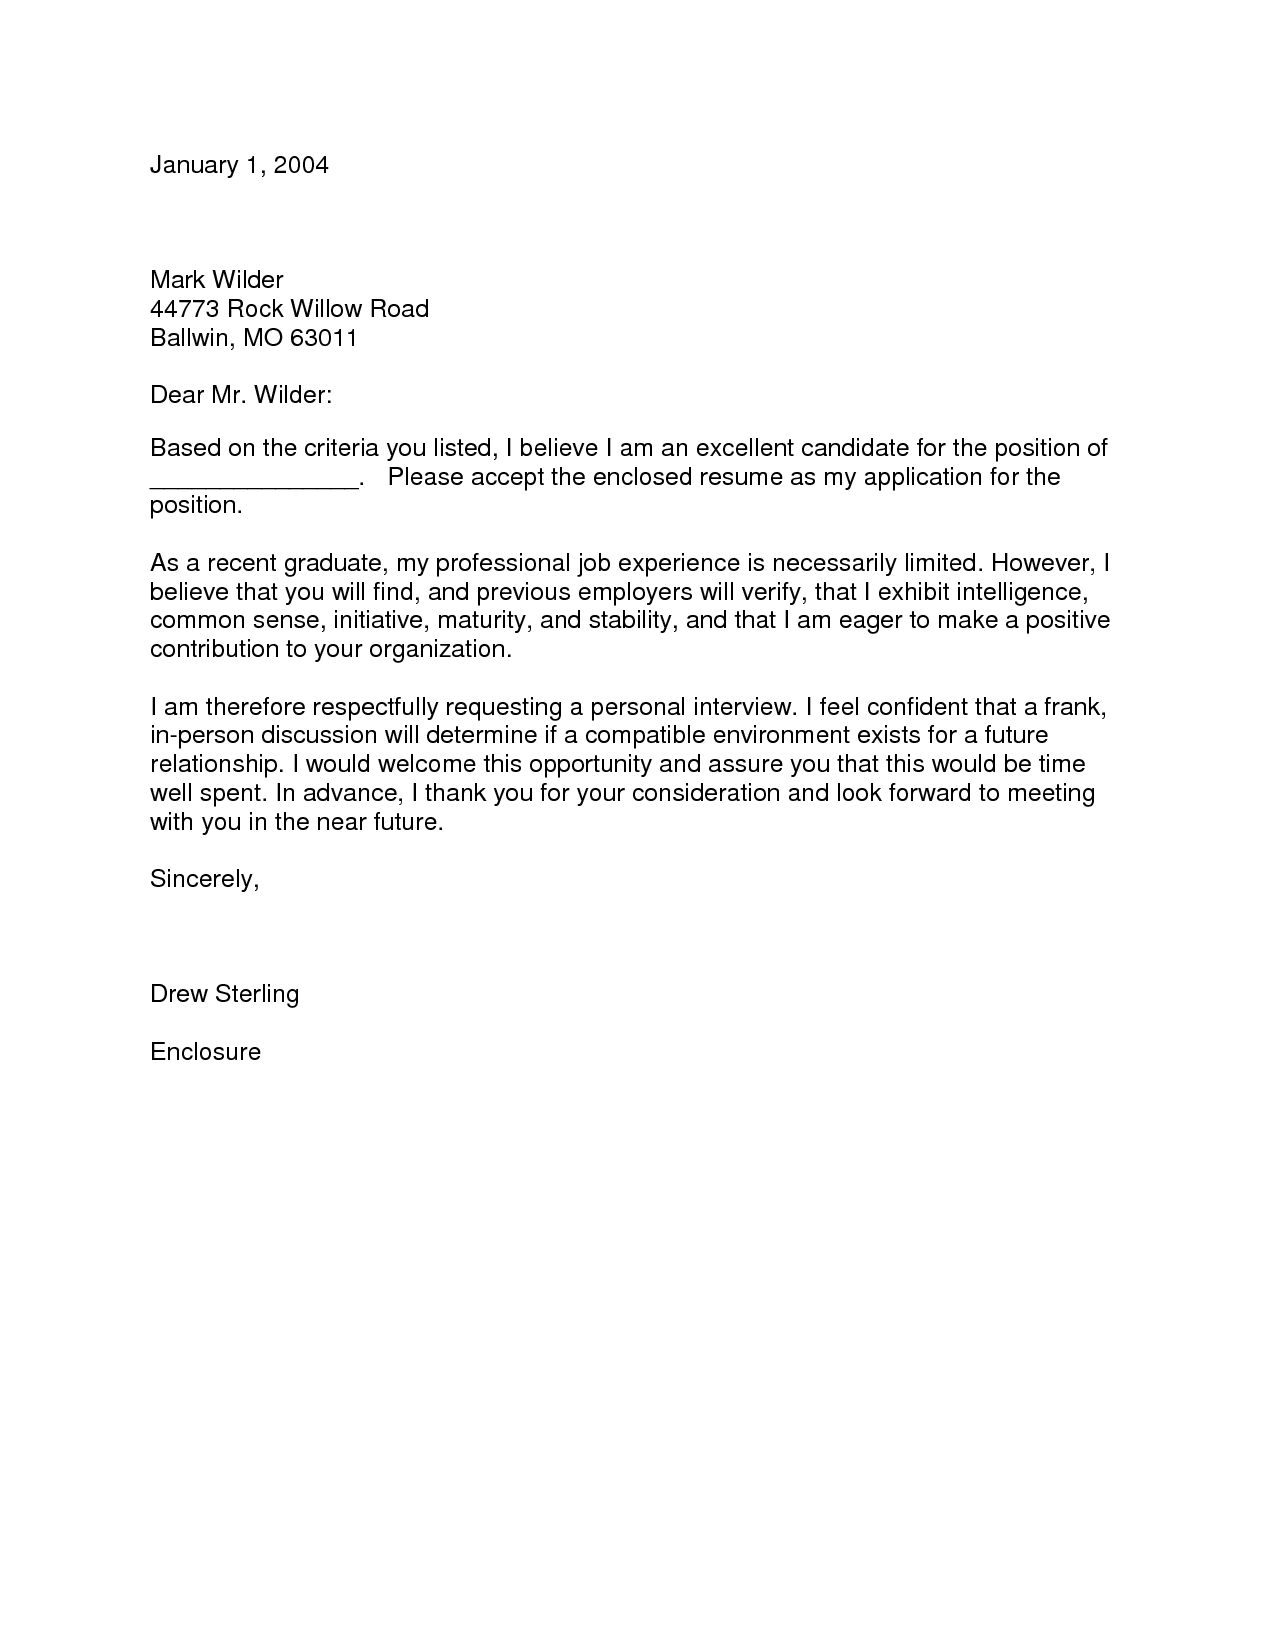 Cover Letter Template New Graduate  cover coverlettertemplate graduate letter template  1